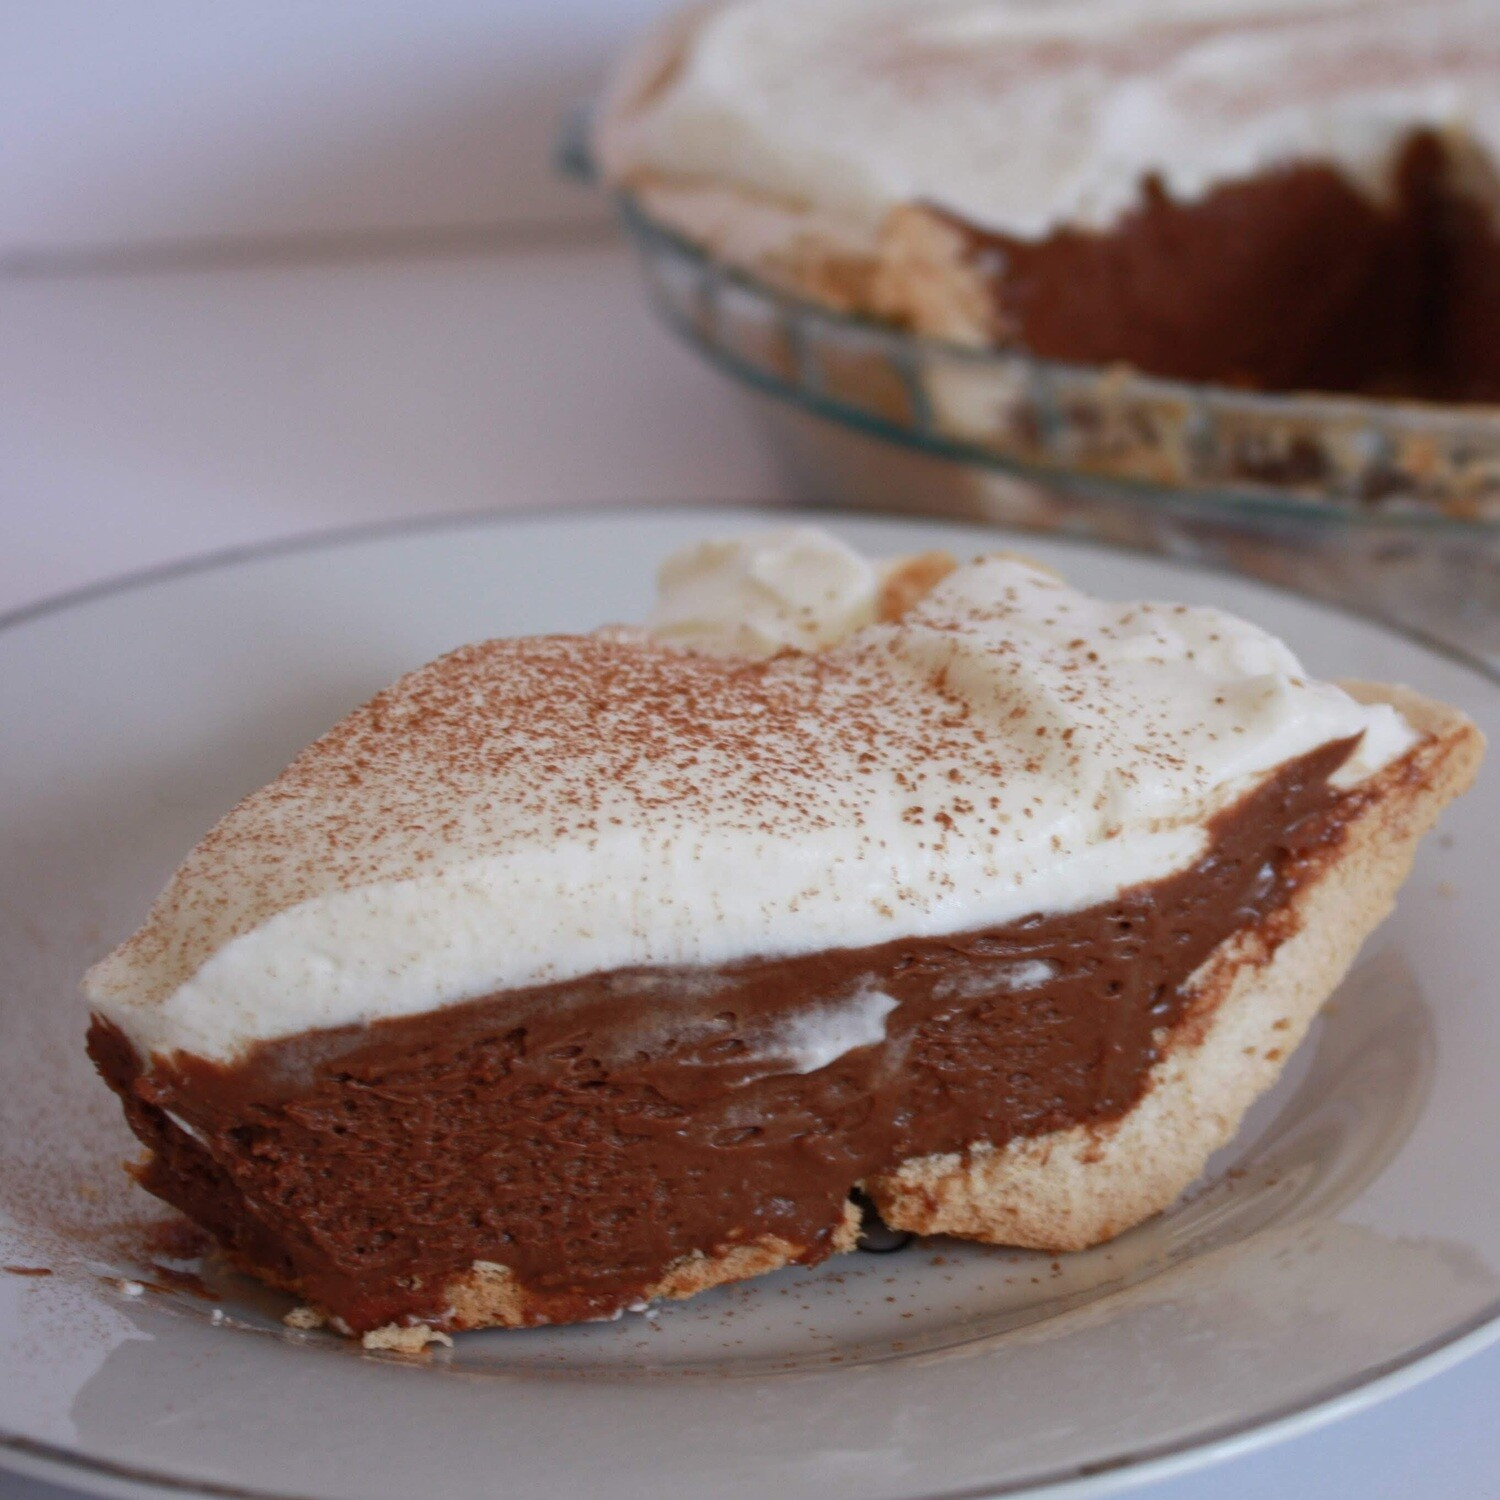 Chocolate Pie - THXGIVING ONLY FOR 11/24 or 11/25